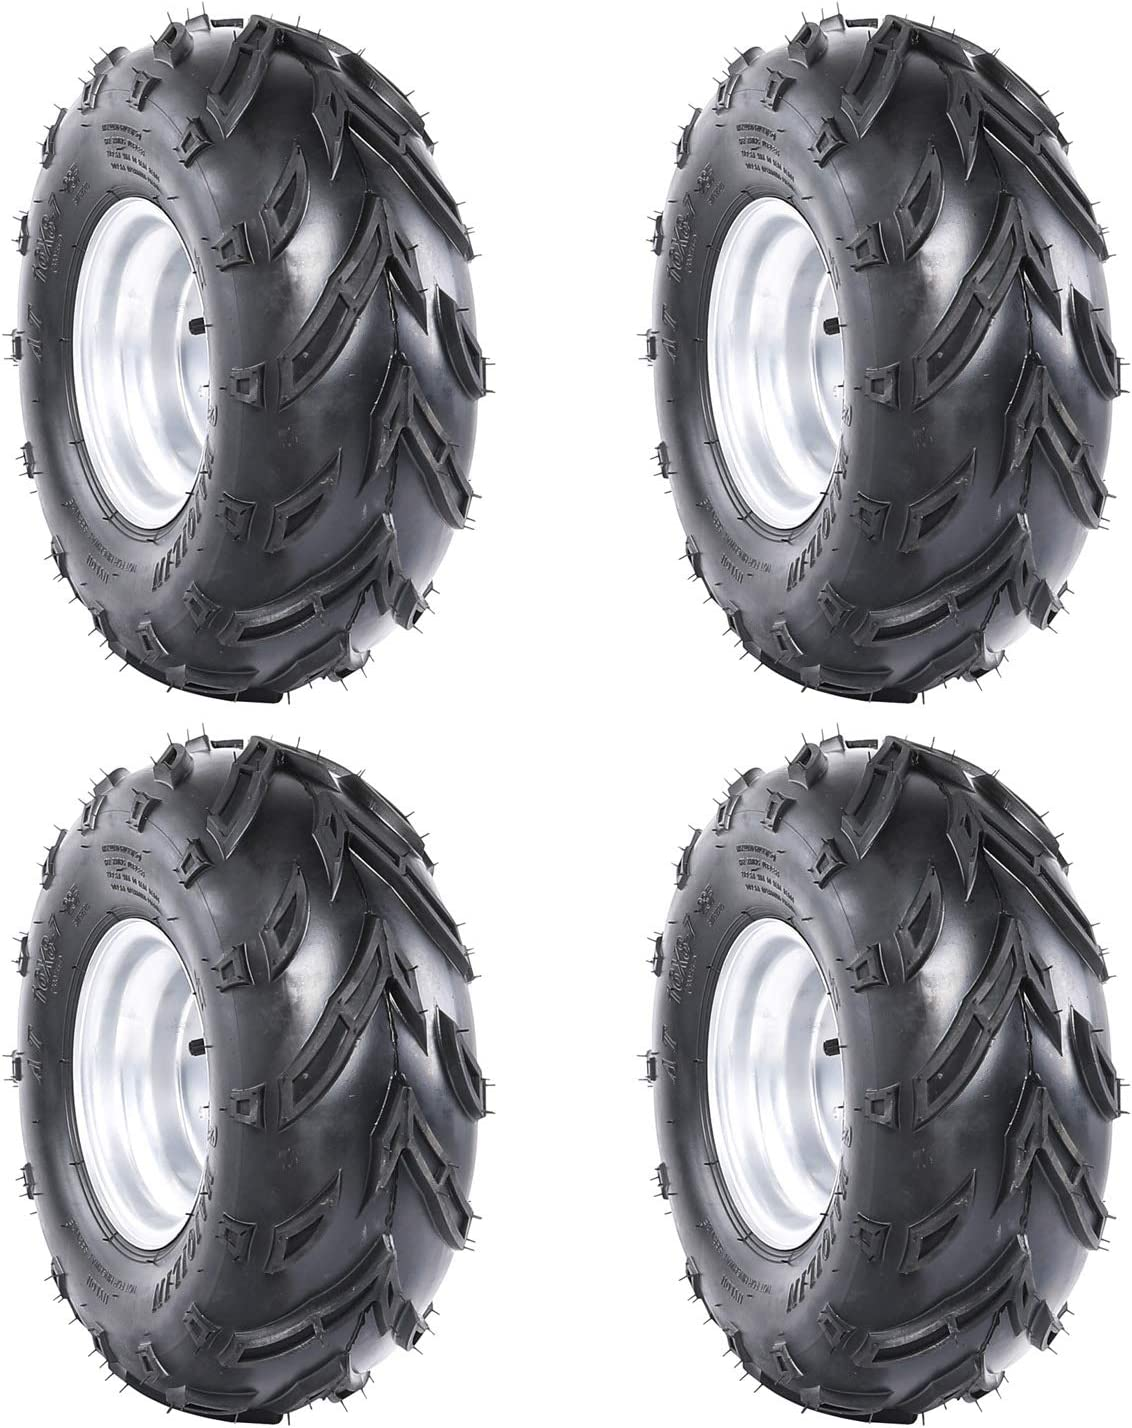 Safety and trust TDPRO 4PCS 16X8-7 Tires Wheels and Tubeless AT Max 45% OFF Rims Rim for with